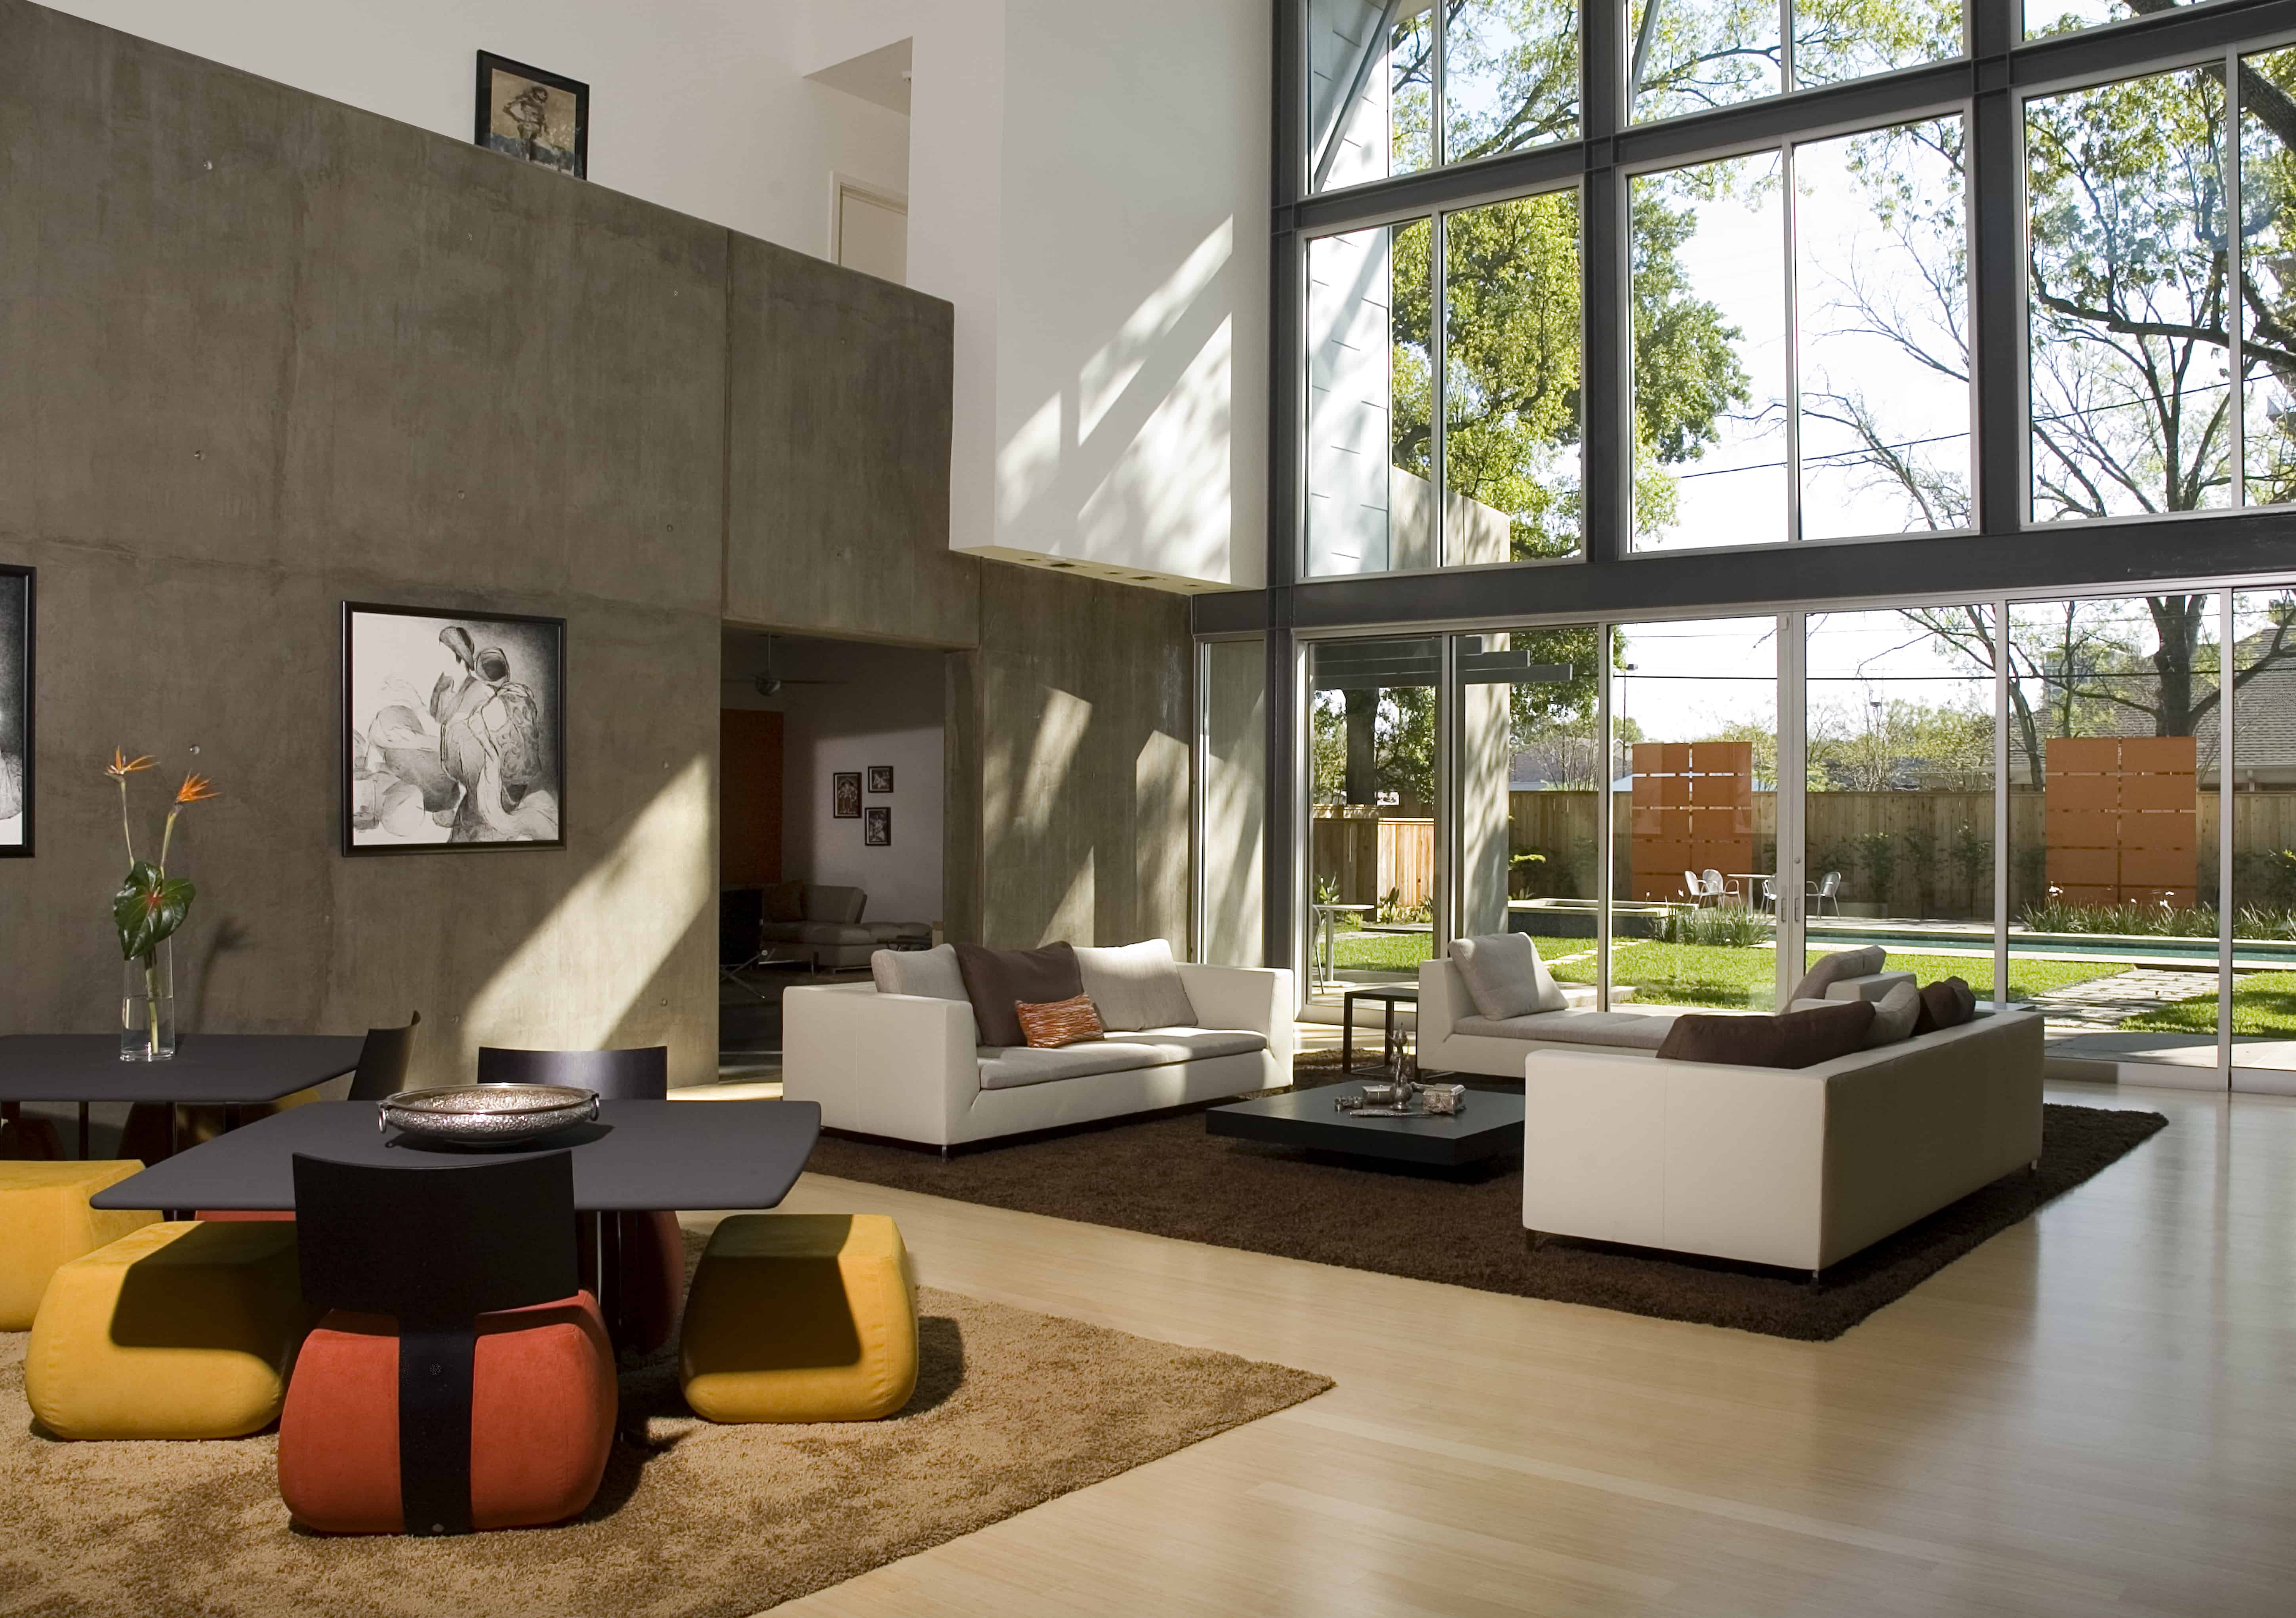 Indian modern home large glass views to yard